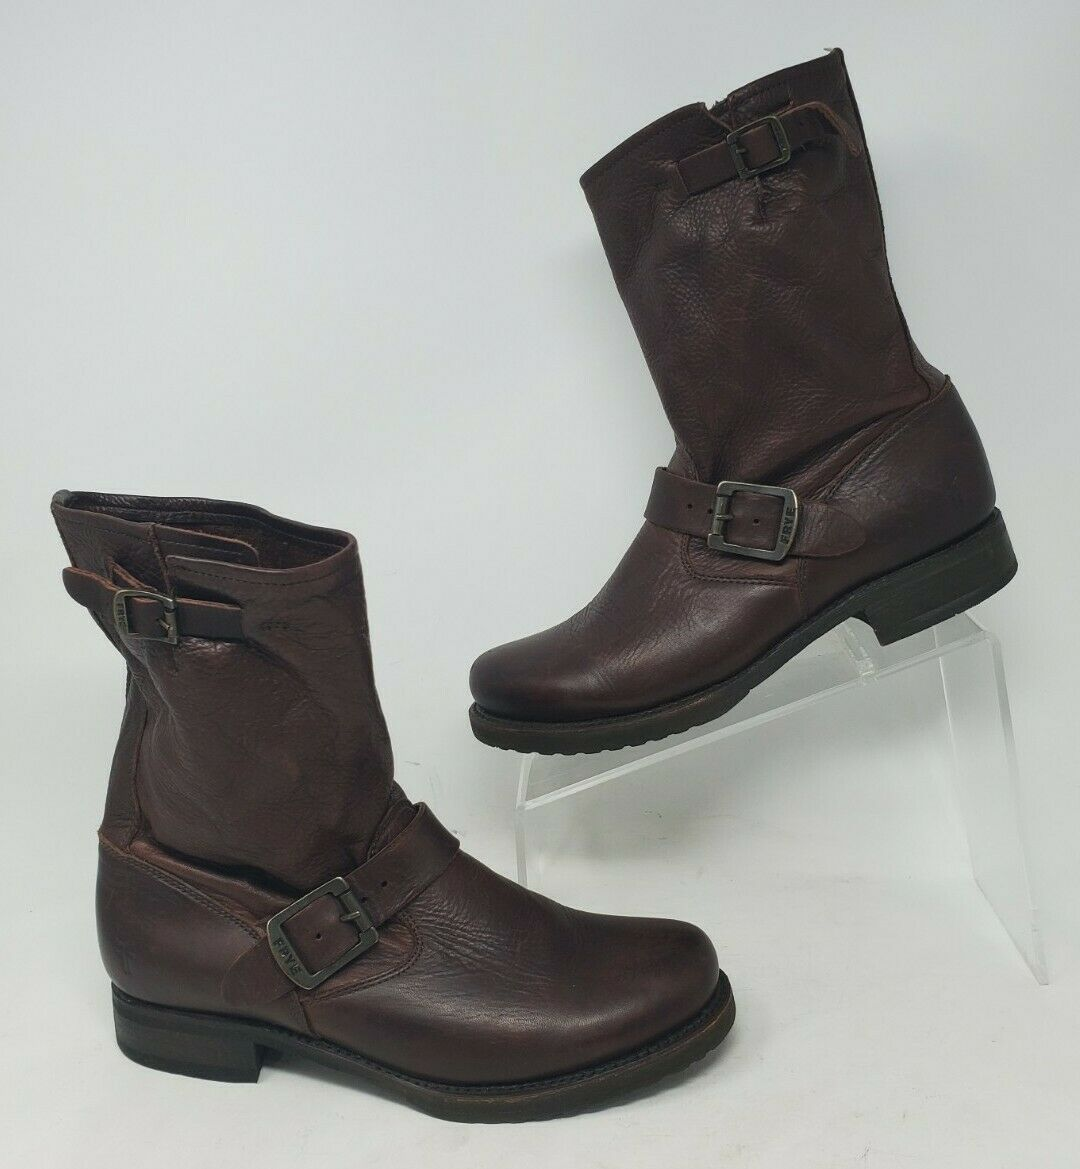 Womens Frye Veronica Boots Size 8 B Brown